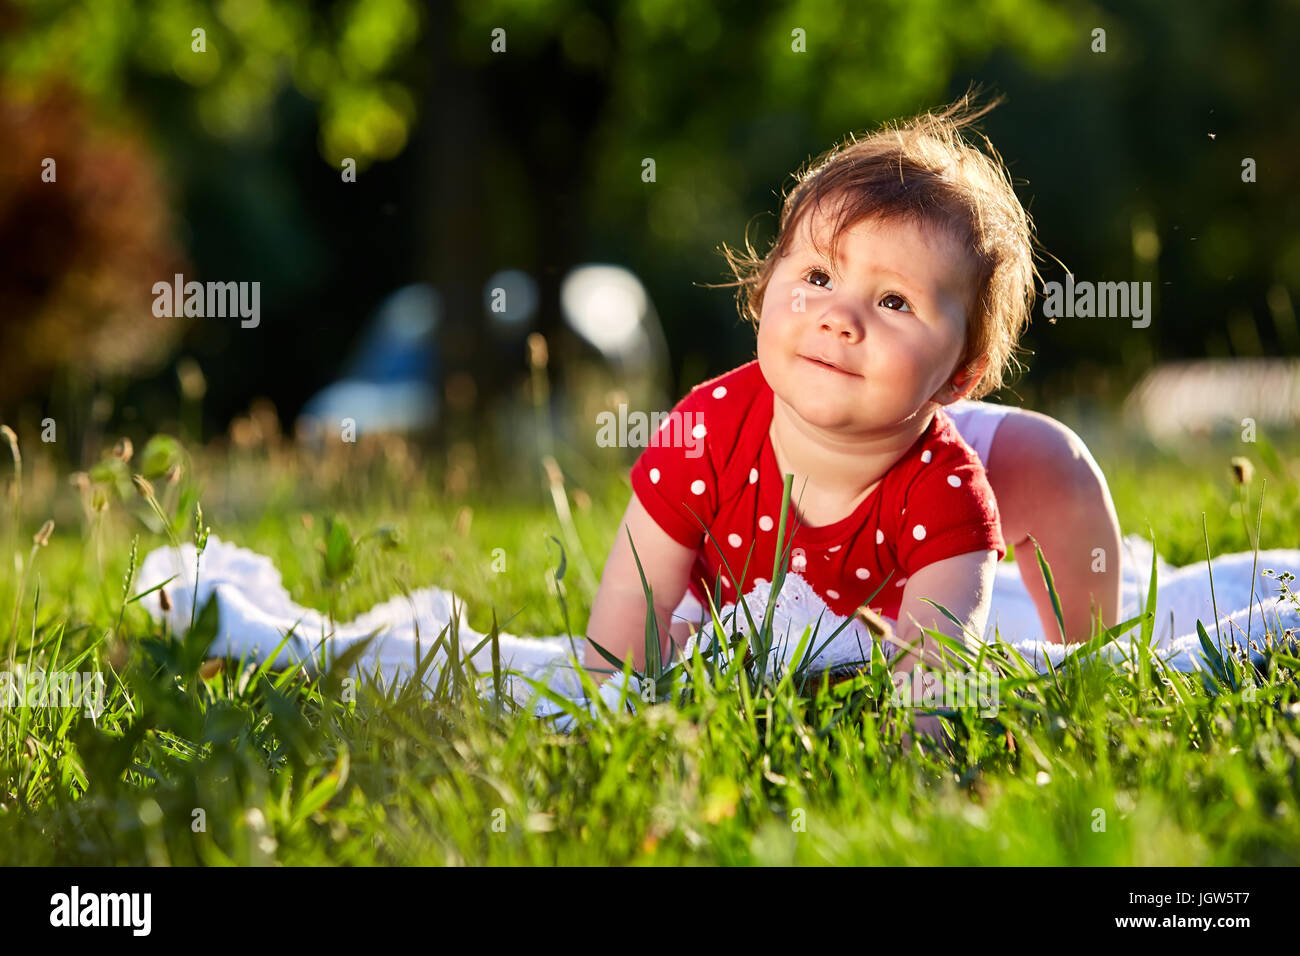 Image of: Pictures Cute Adorable Nice Baby Girl In Red Spring Dress Smiling Sitting Under The Tree Baby Sitting On Grass In The Park Alamy Cute Adorable Nice Baby Girl In Red Spring Dress Smiling Sitting